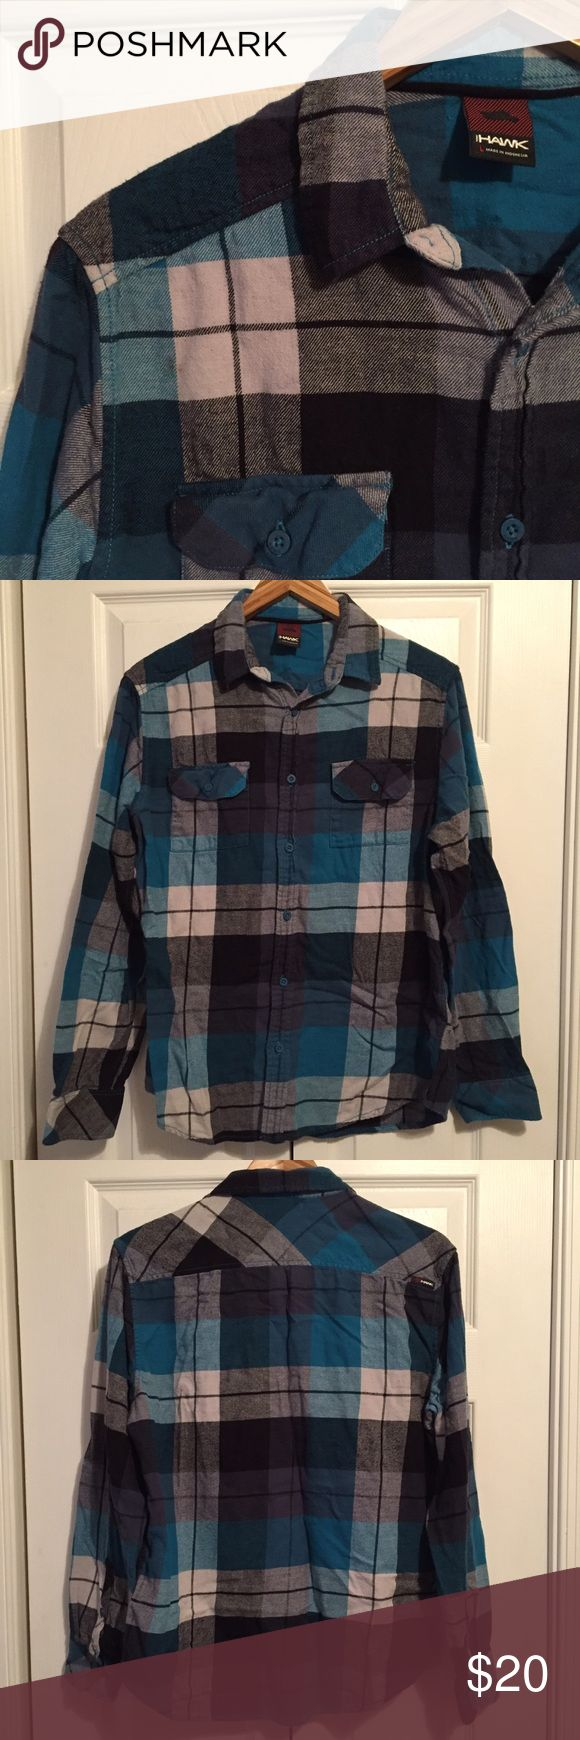 Men's Plaid Flannel Shirt Blue, white, grey and black flannel shirt only worn a few times! Tony Hawk size large. Tony Hawk Shirts